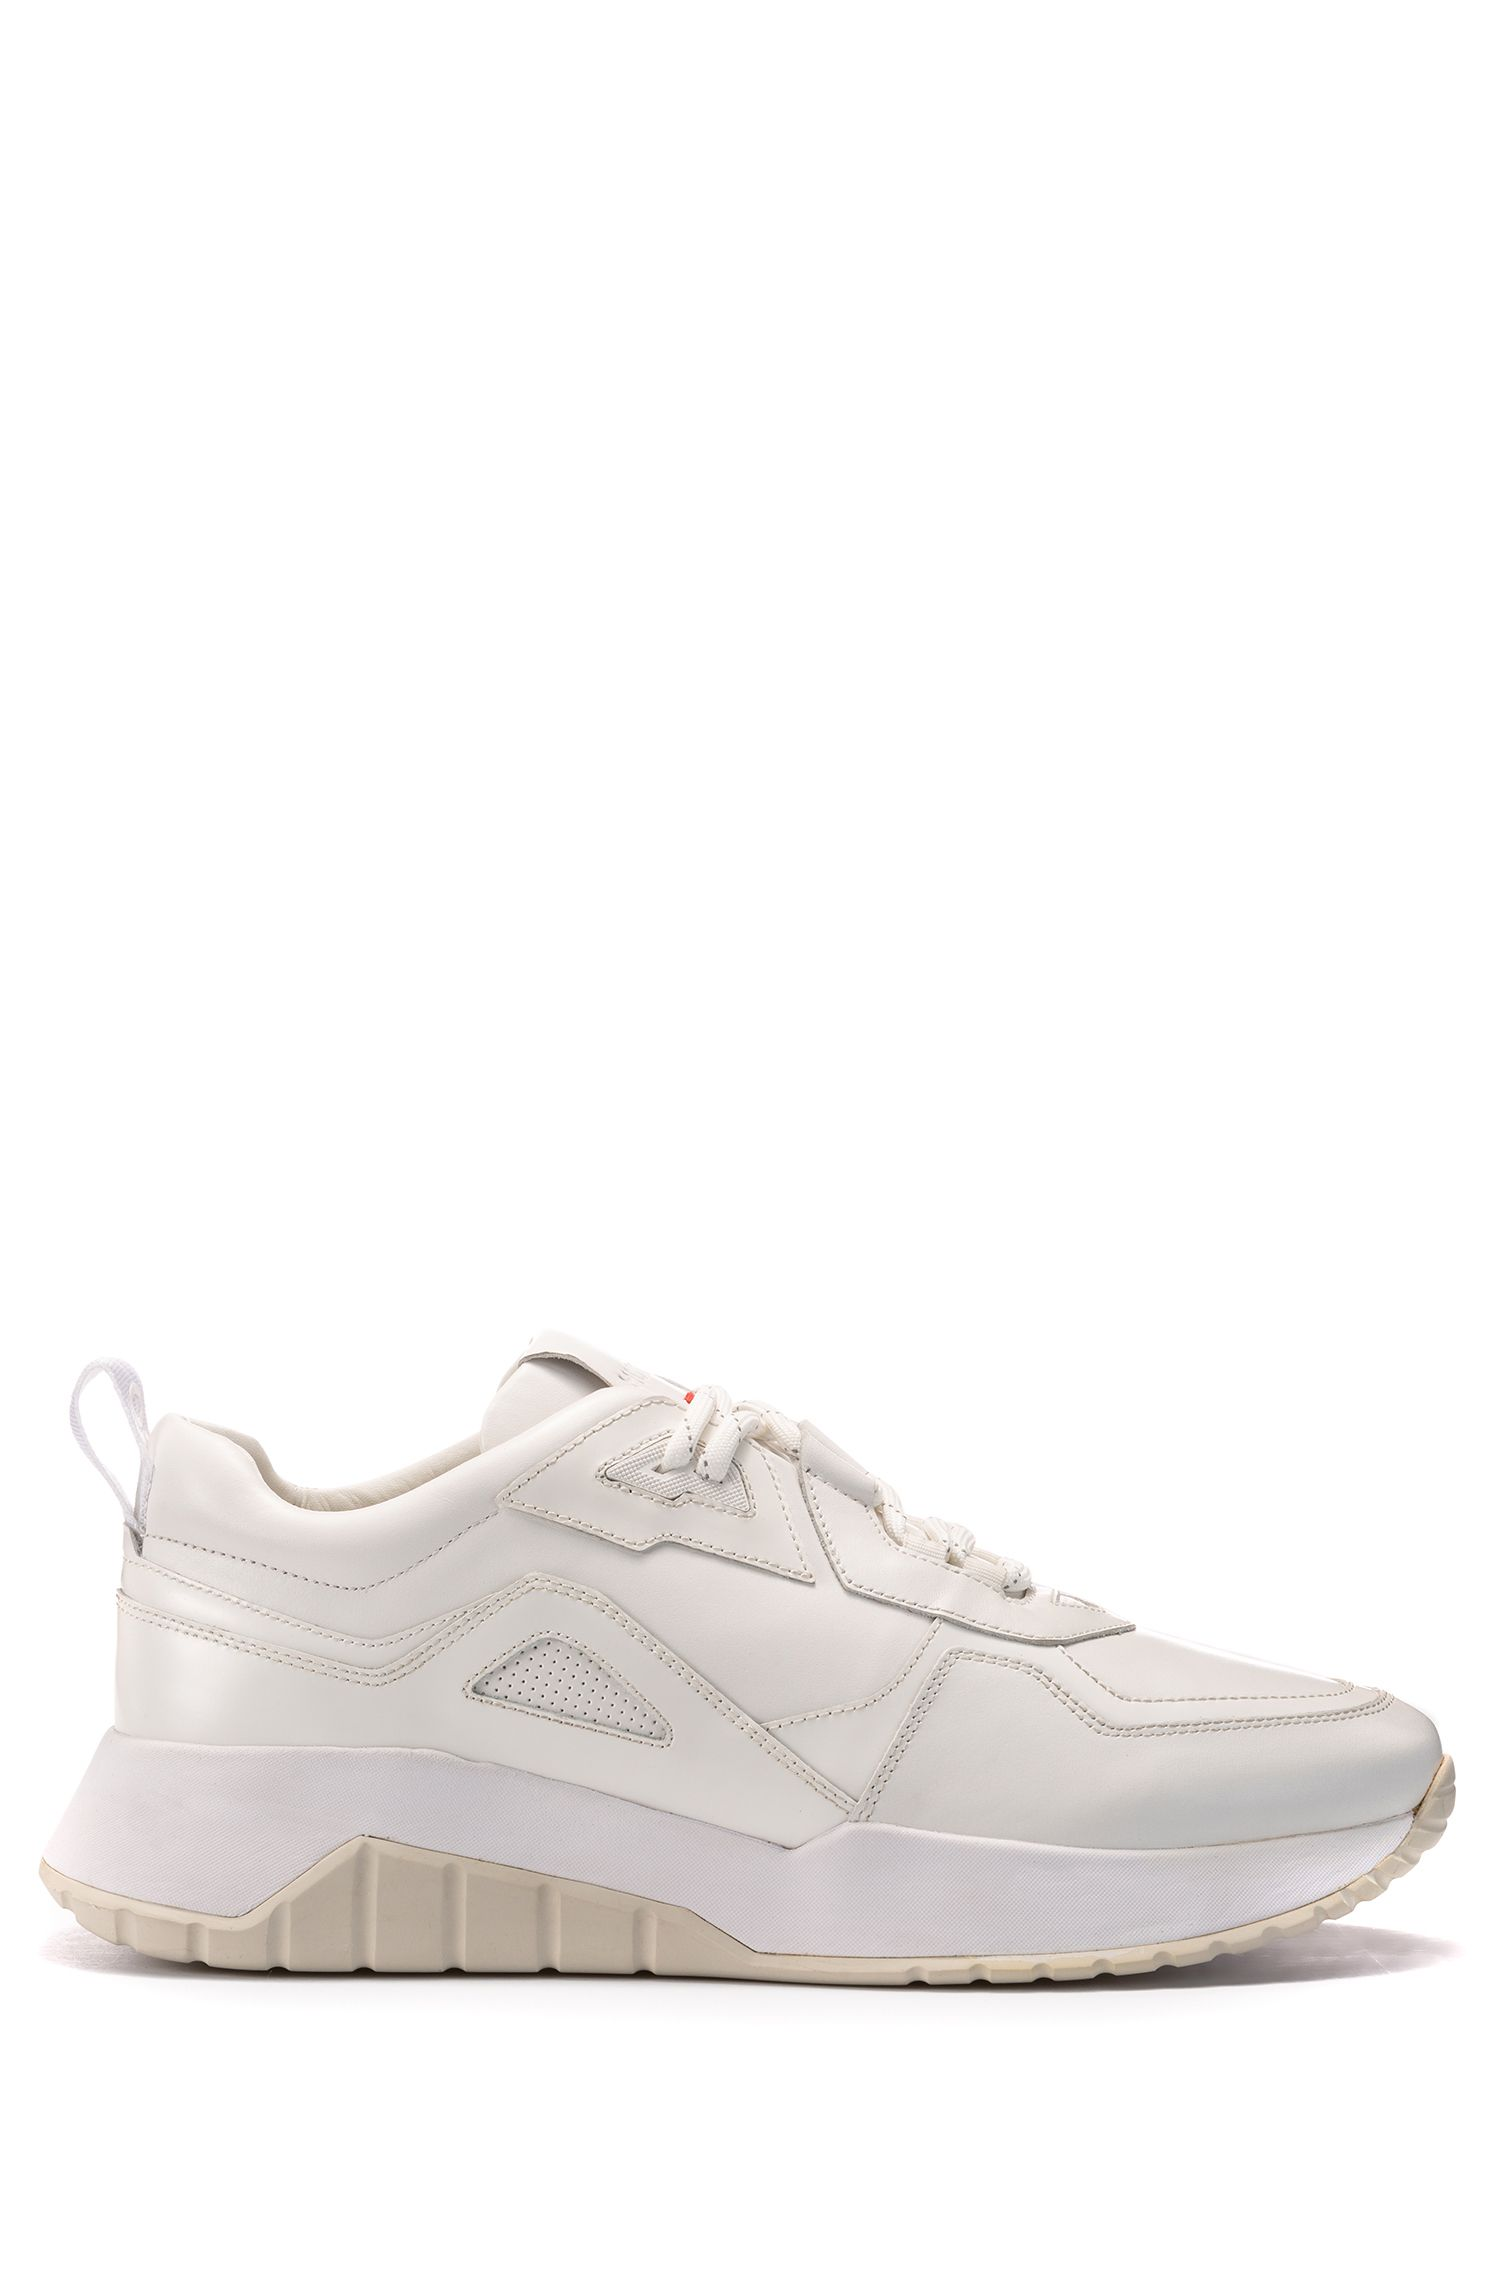 Lace-up trainers in leather with perforated details, White